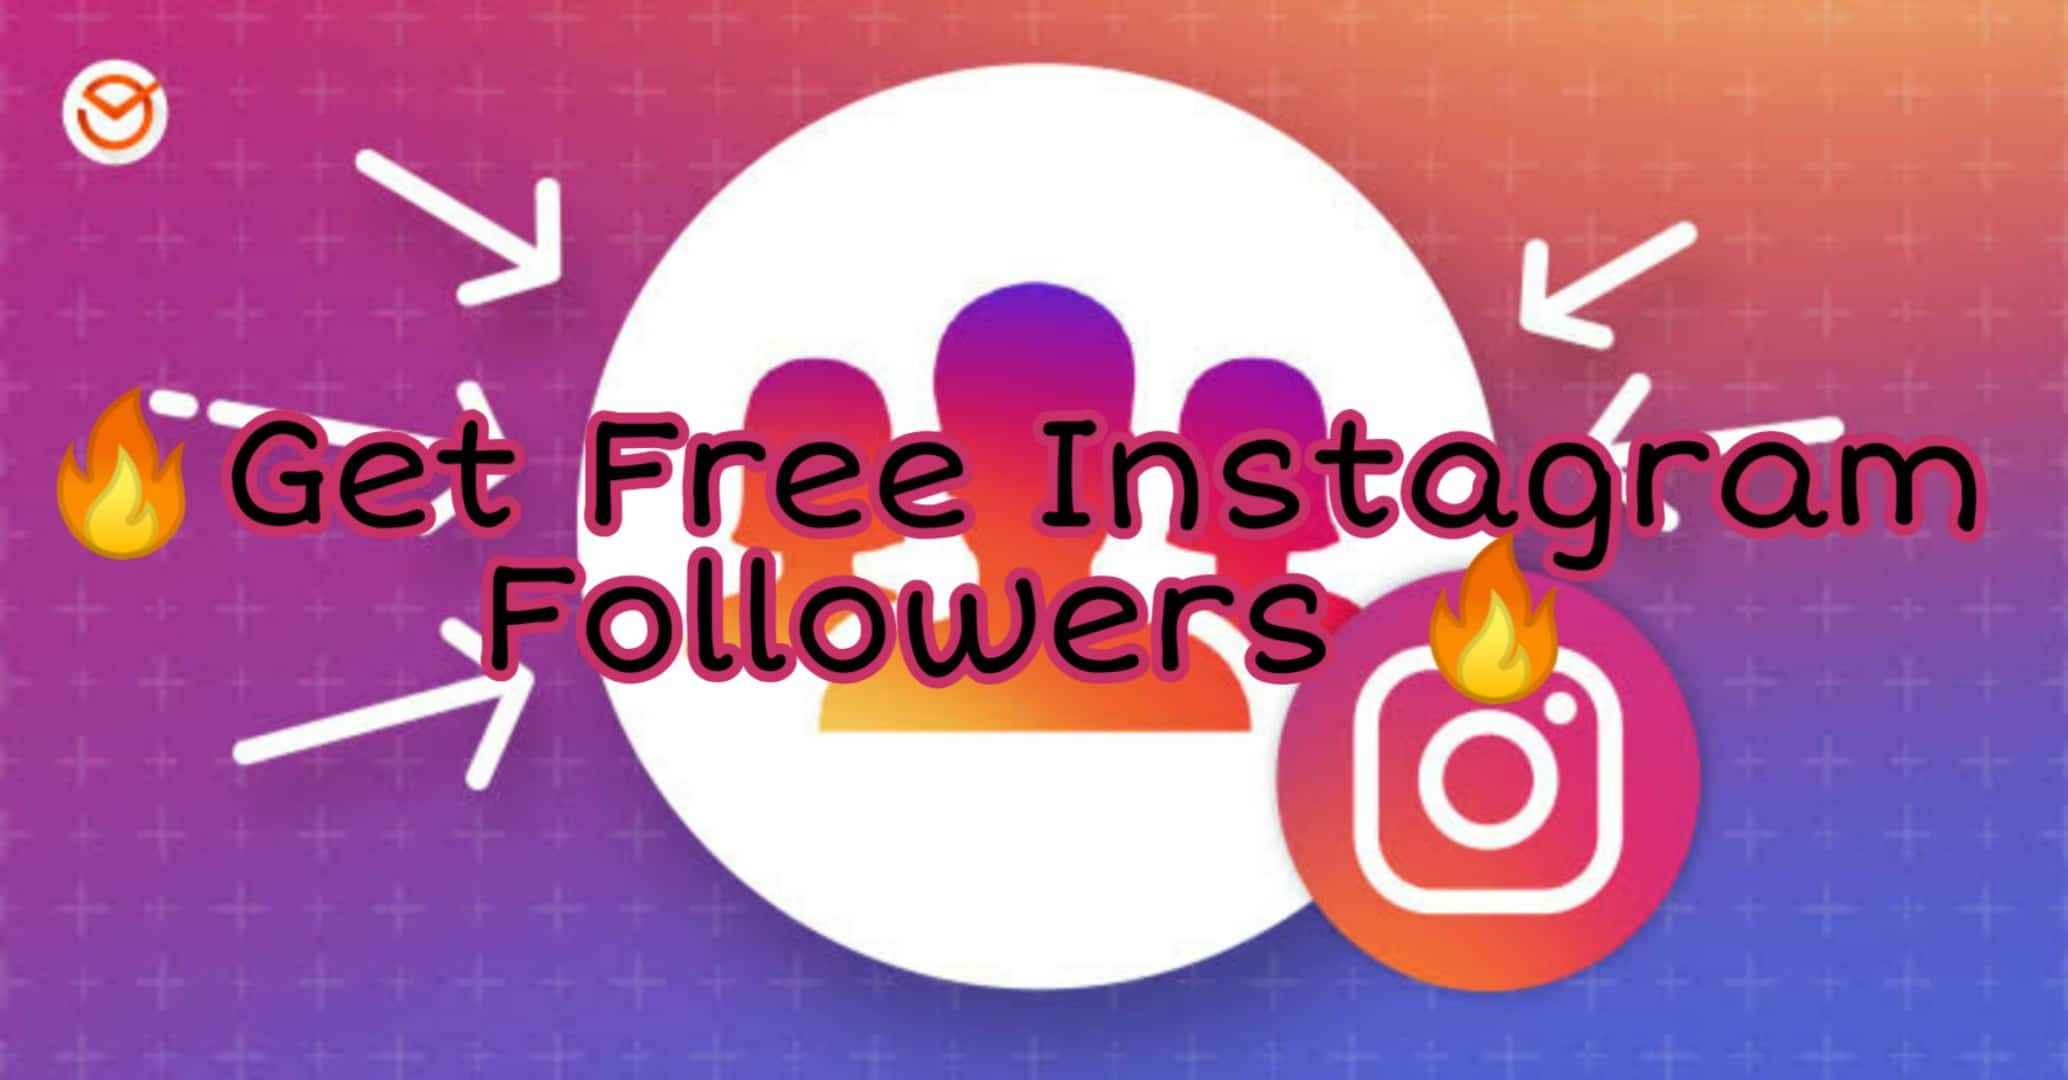 How to get Real Free Instagram Followers 2019